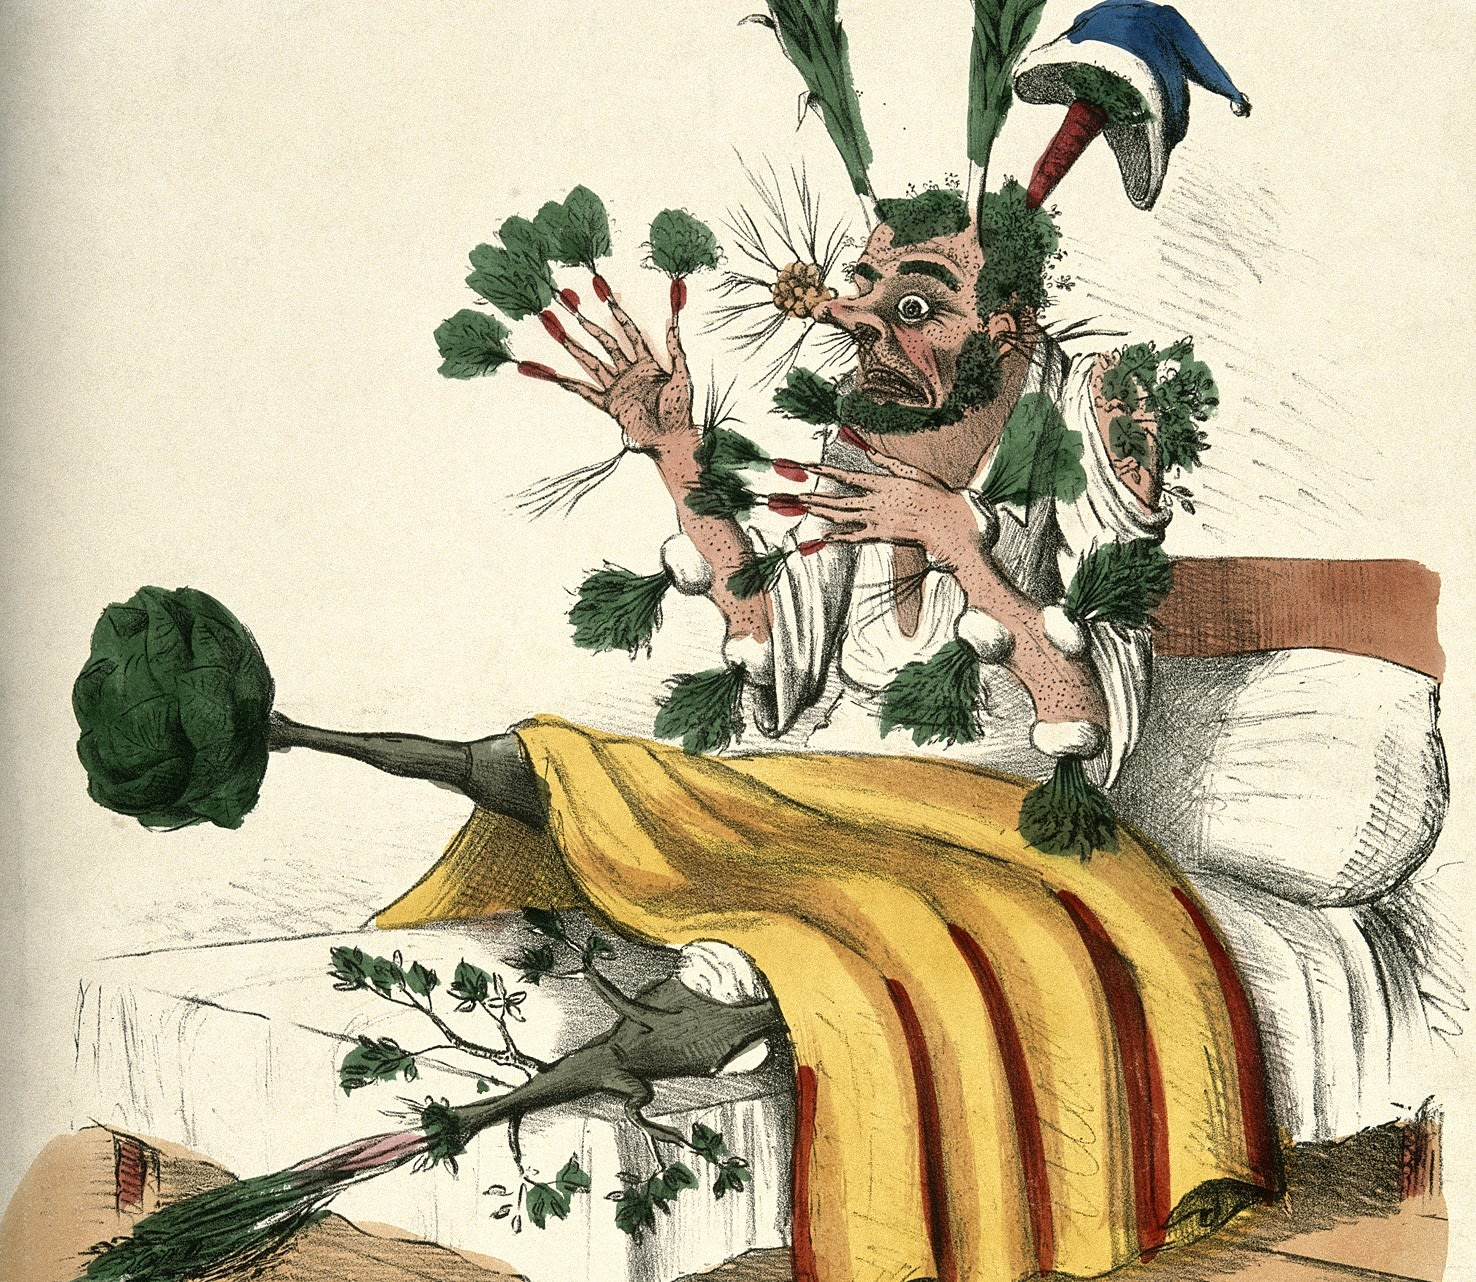 Image showing a man in bed with vegetables sprouting from all parts of his body.